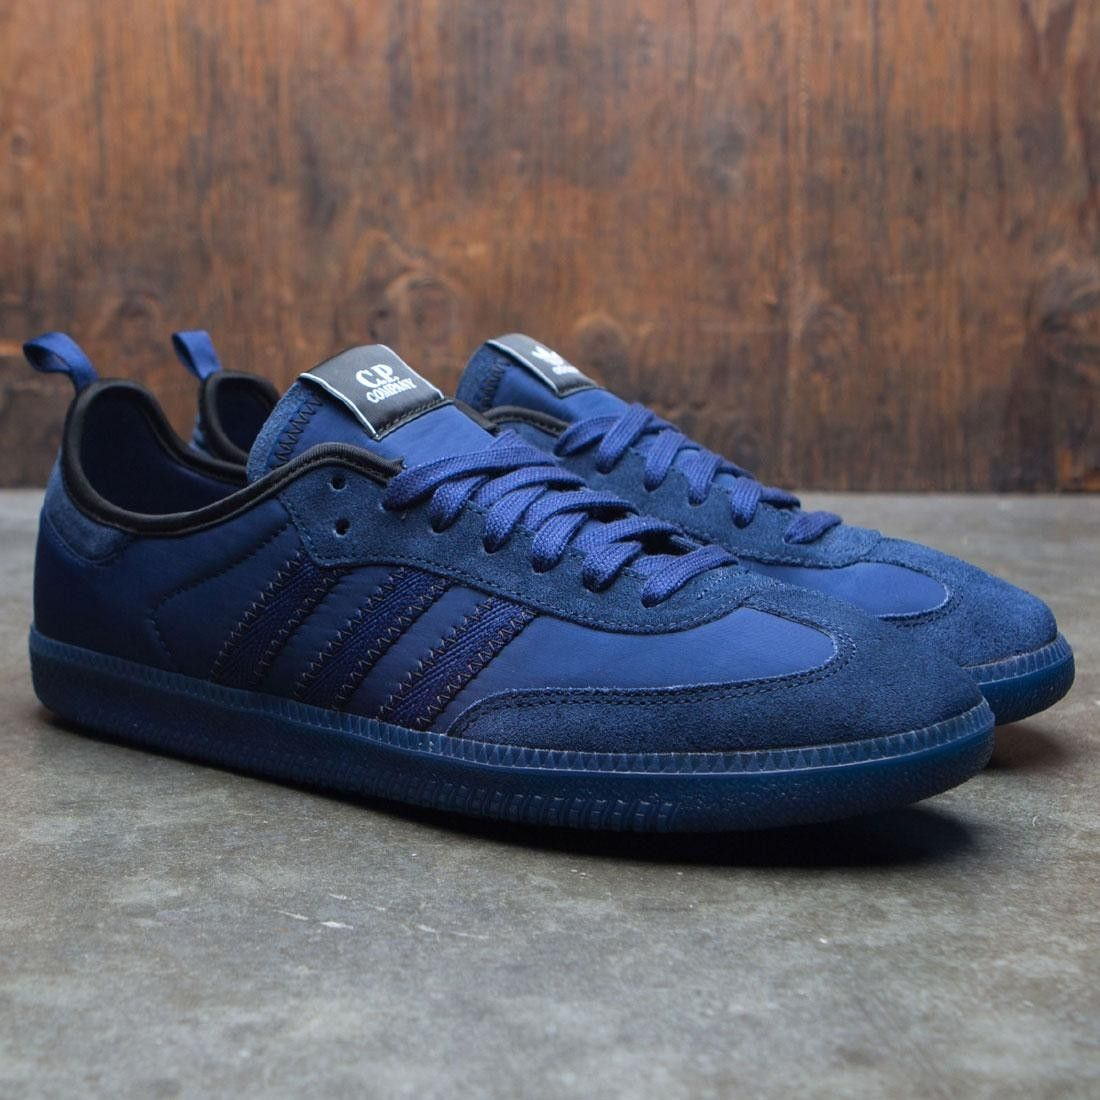 brand new 097ca 0ae80 Adidas x C.P. Company Men Samba blue dark blue night sky dark purple